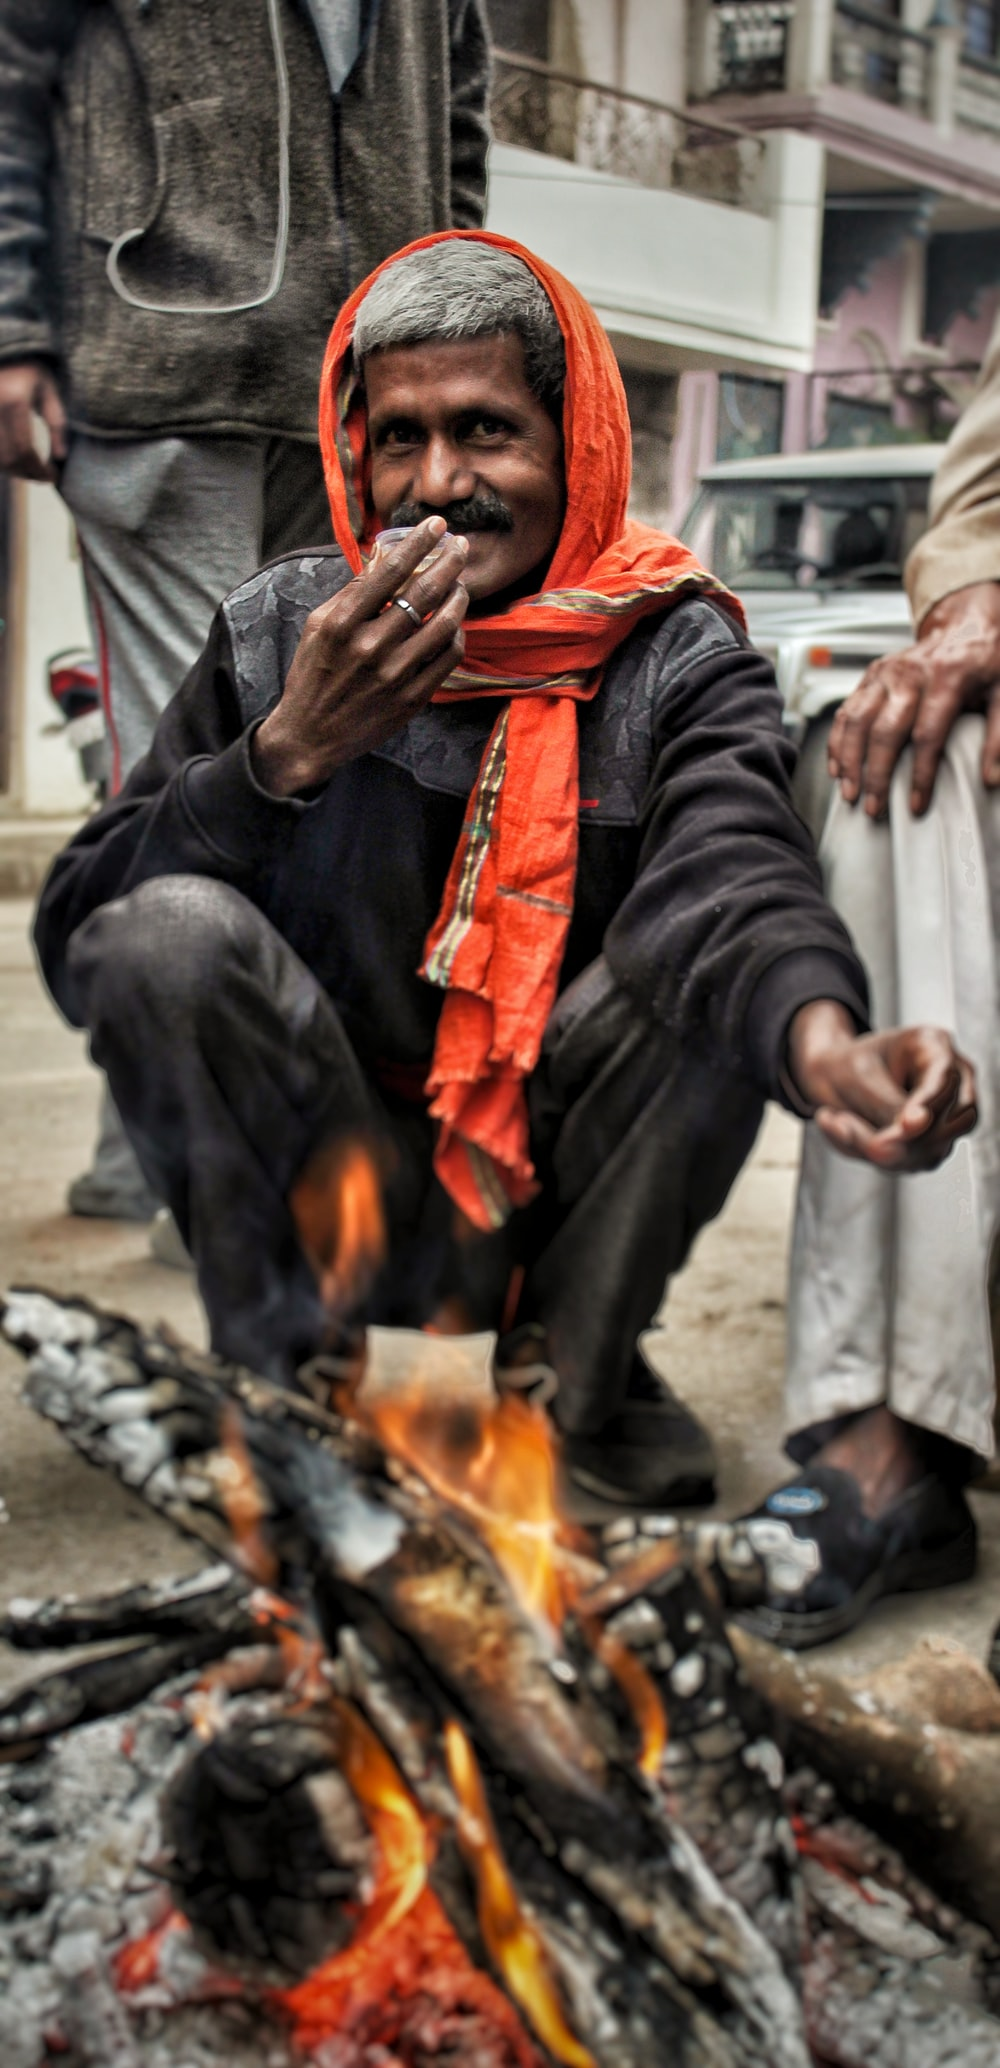 man sitting near bone fire